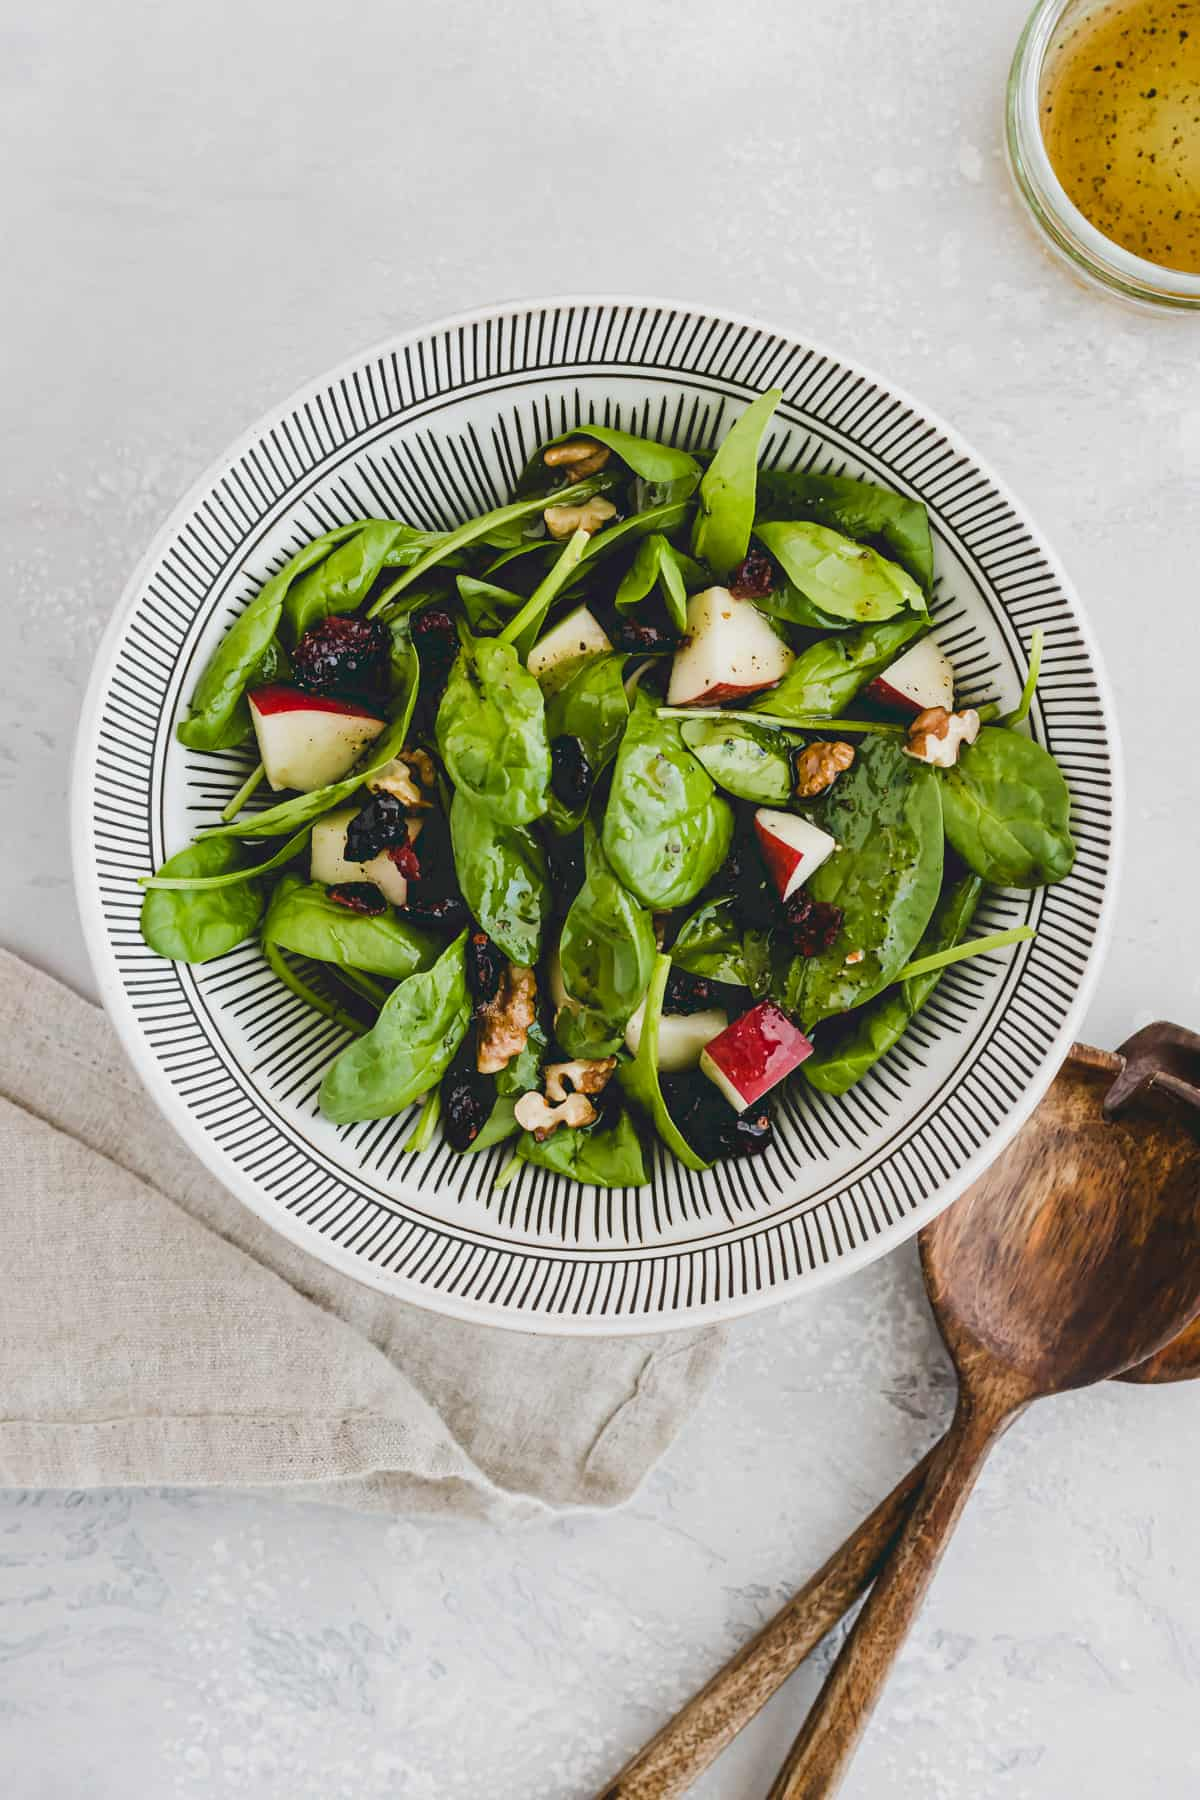 Spinach Salad with Apple, Cranberry & Walnut next to a glass vinaigrette